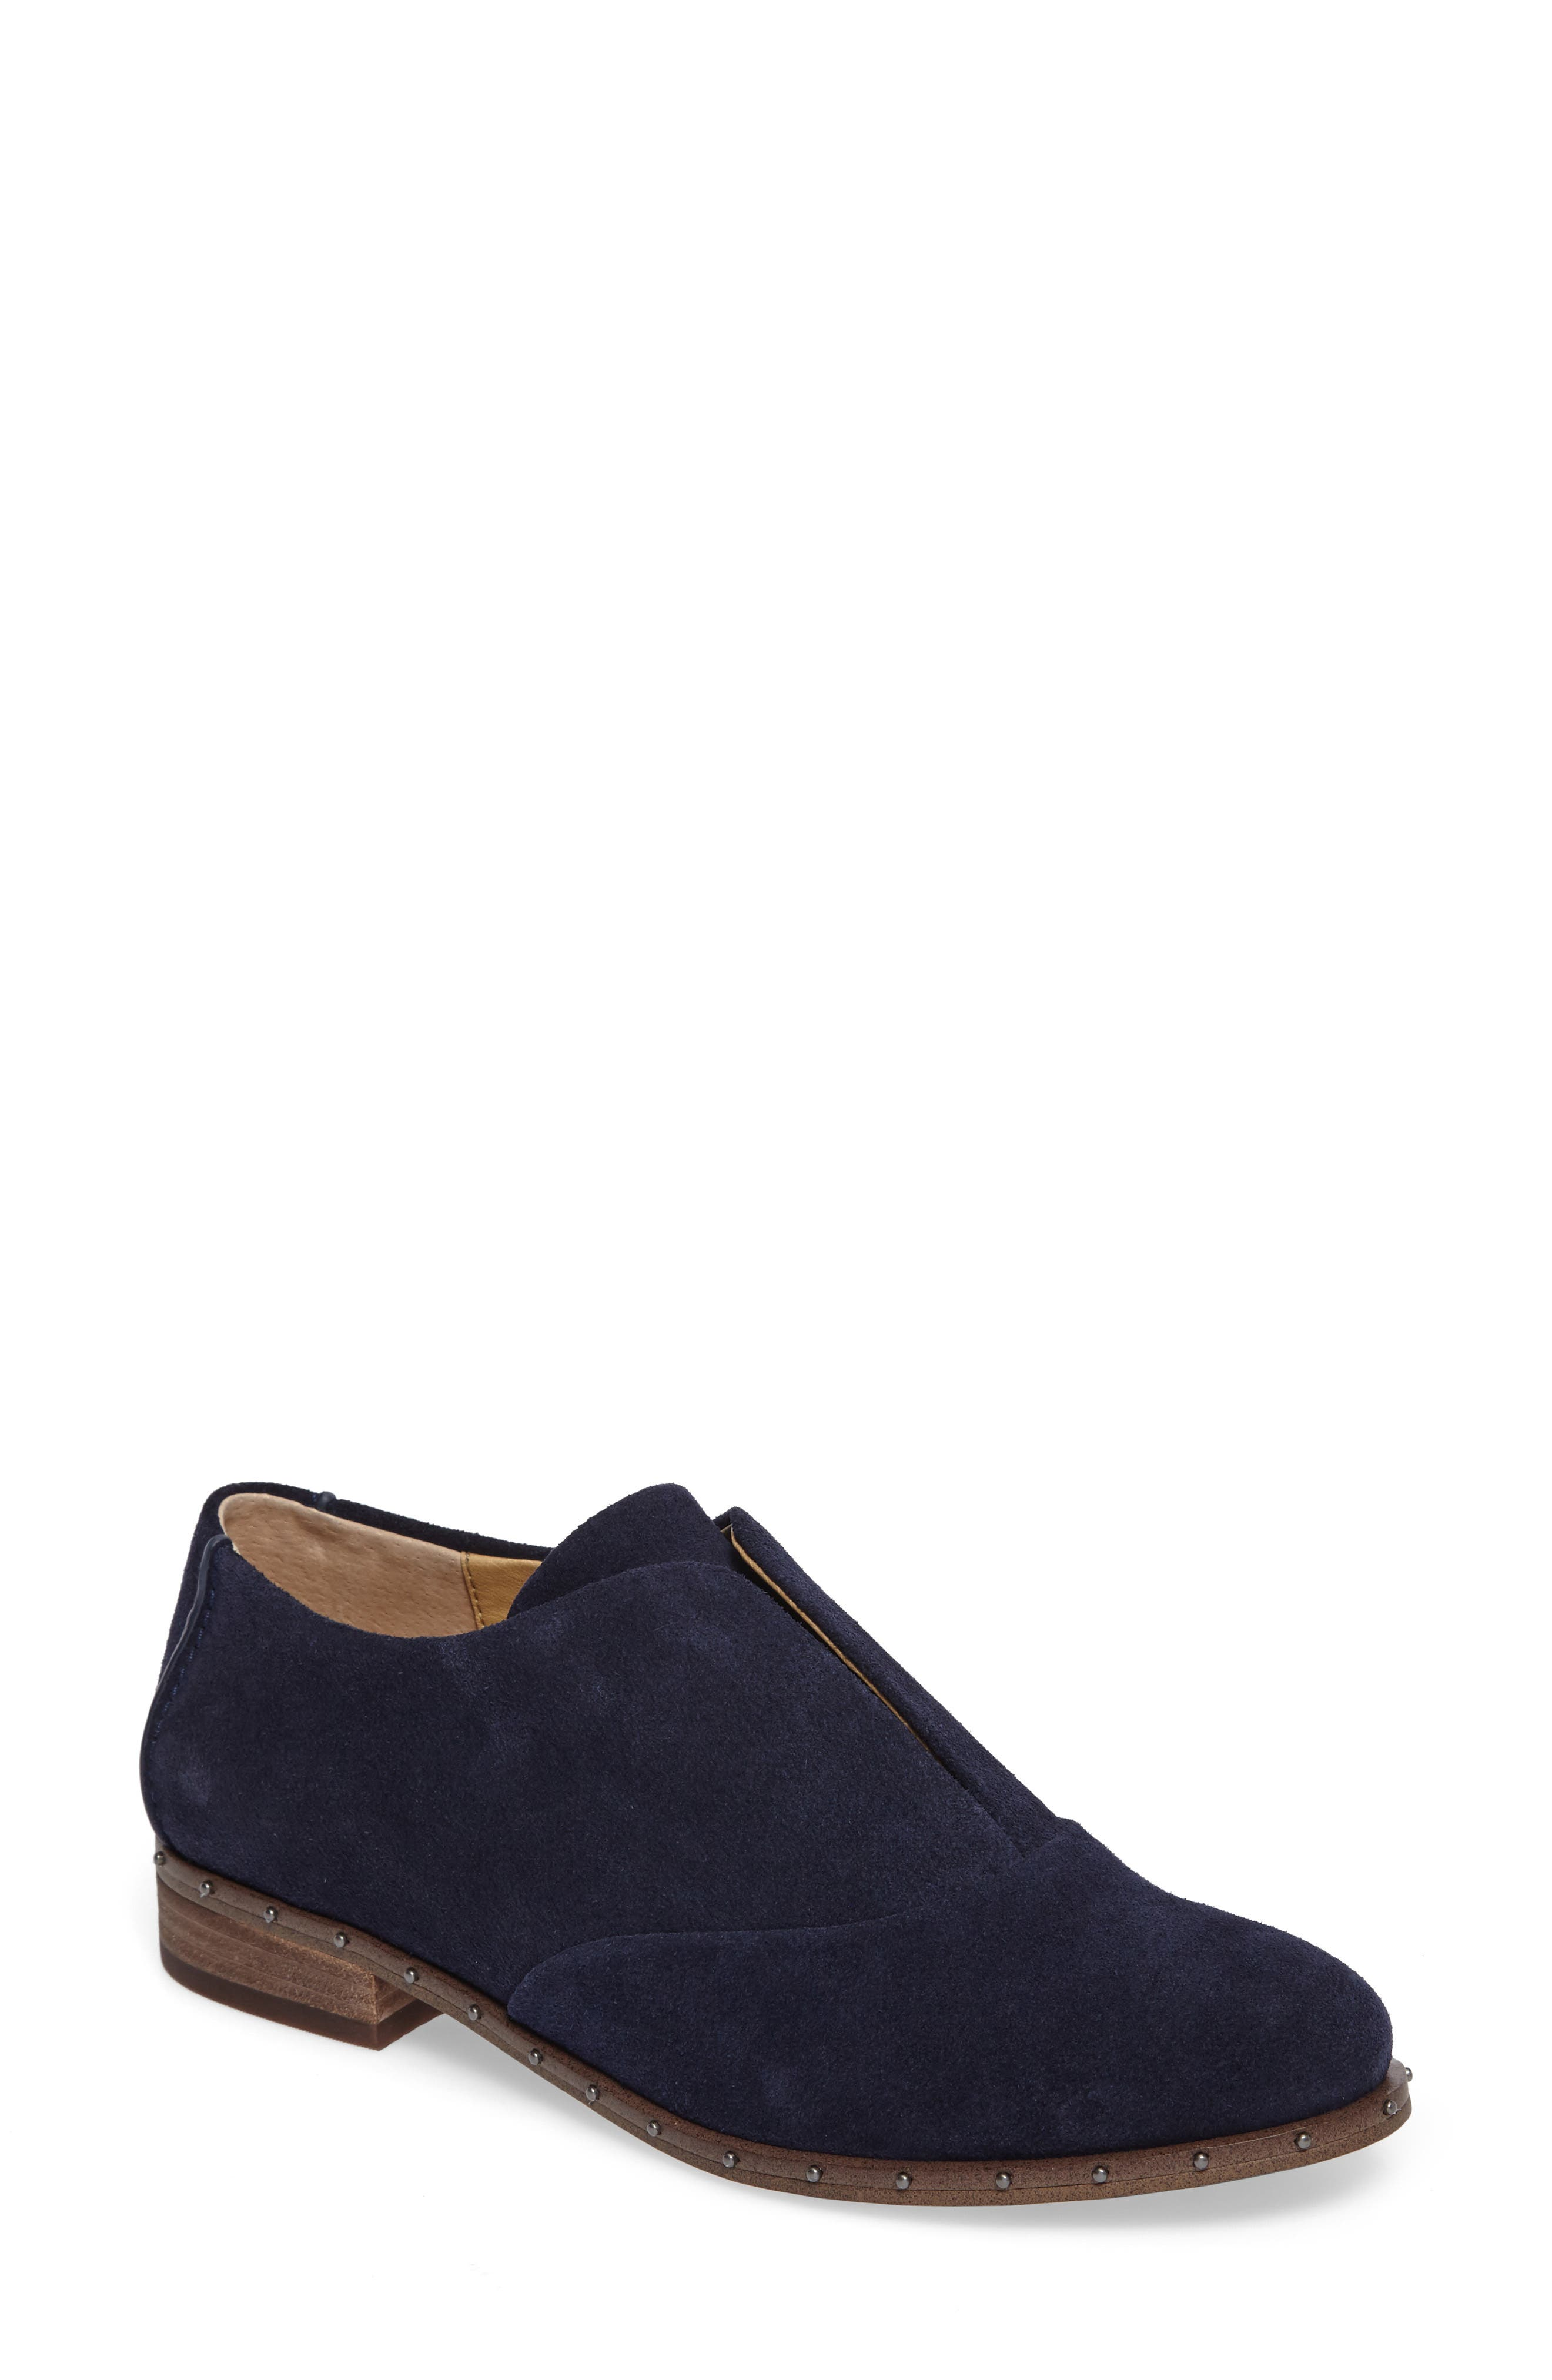 Deandra Studded Laceless Oxford,                         Main,                         color, Navy Suede